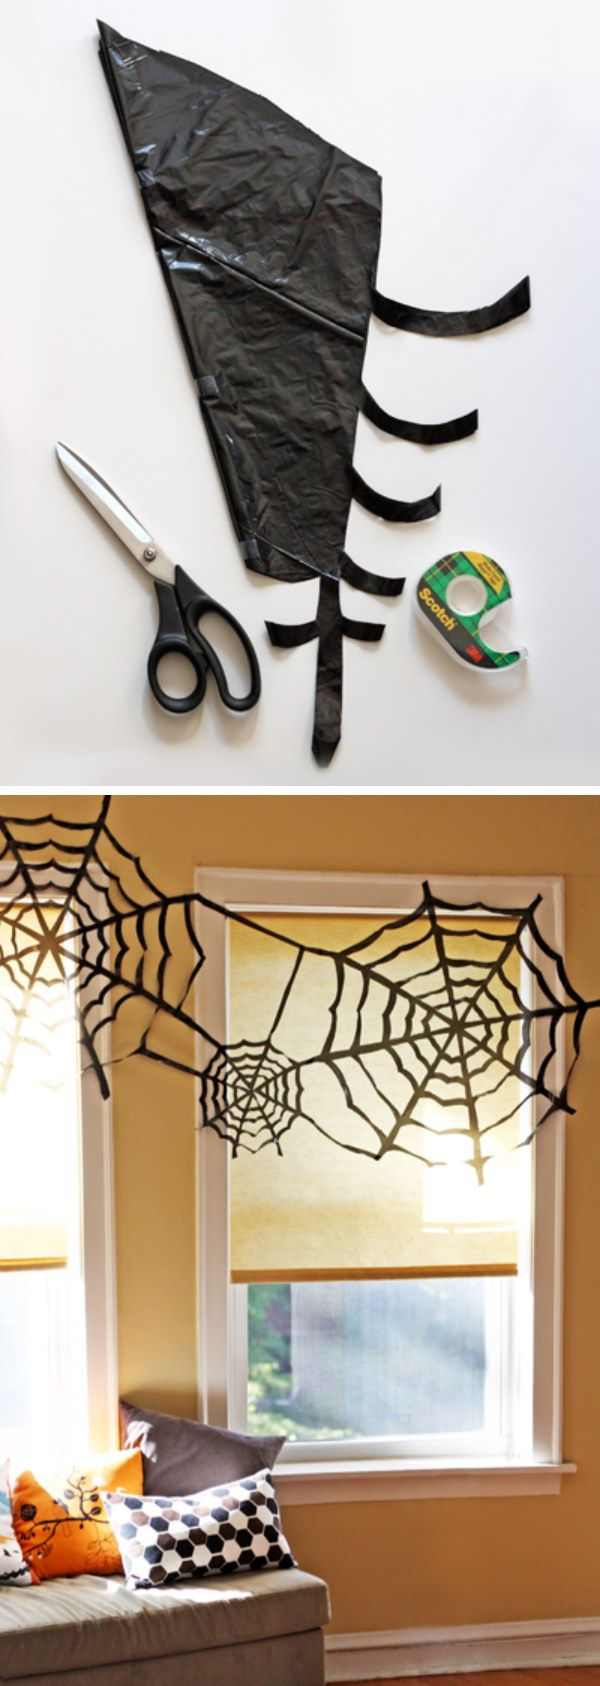 1000 ideas about halloween office decorations on for Decoration porte classe halloween